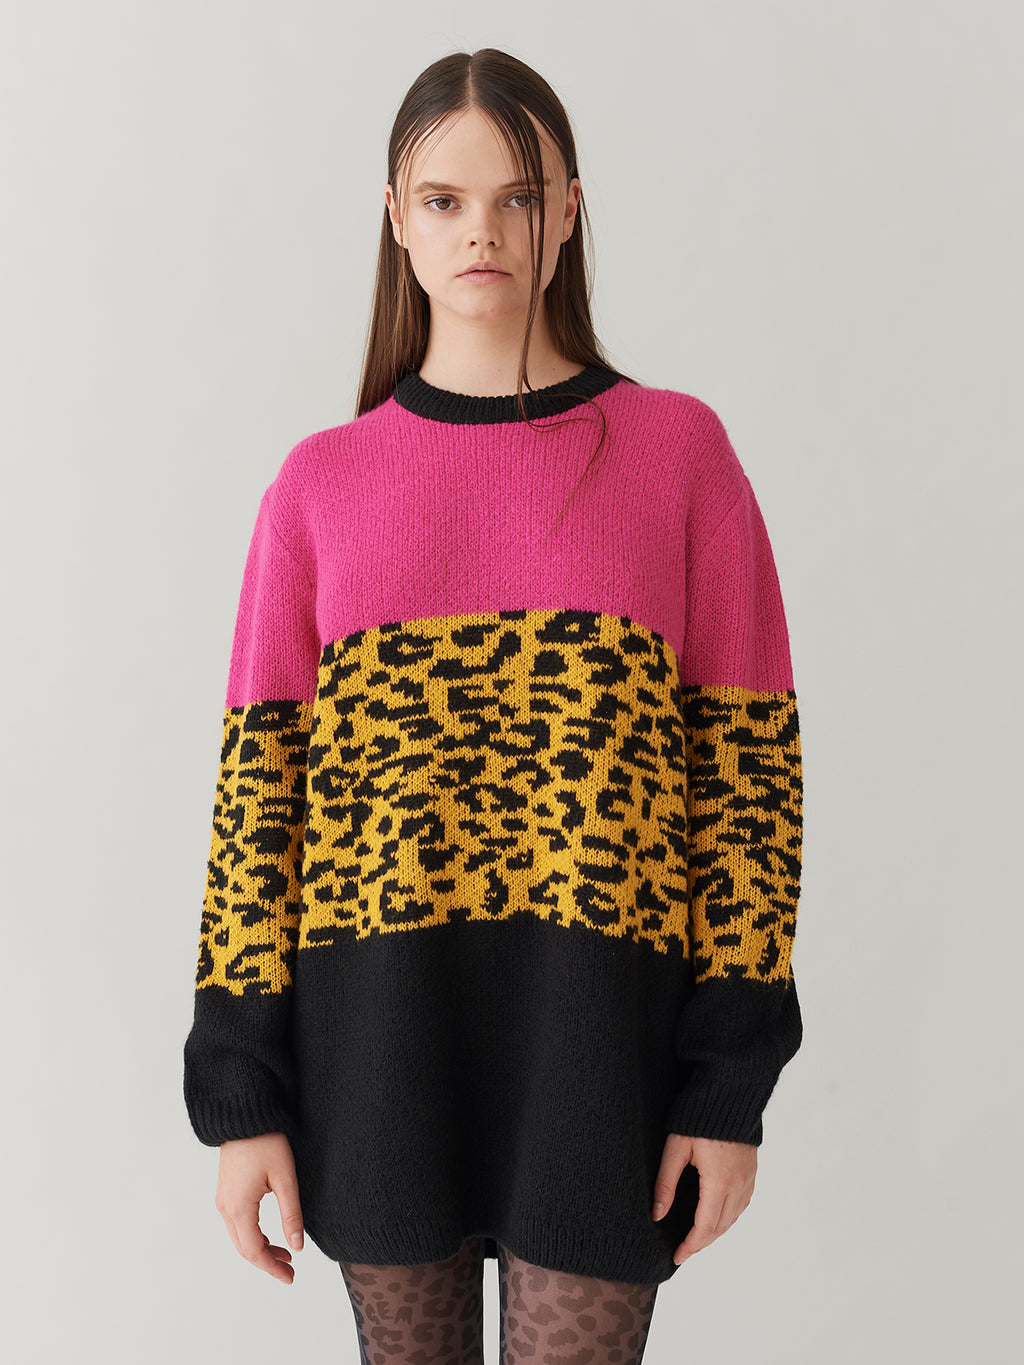 G.E.M. Colour Block Leopard Jumper